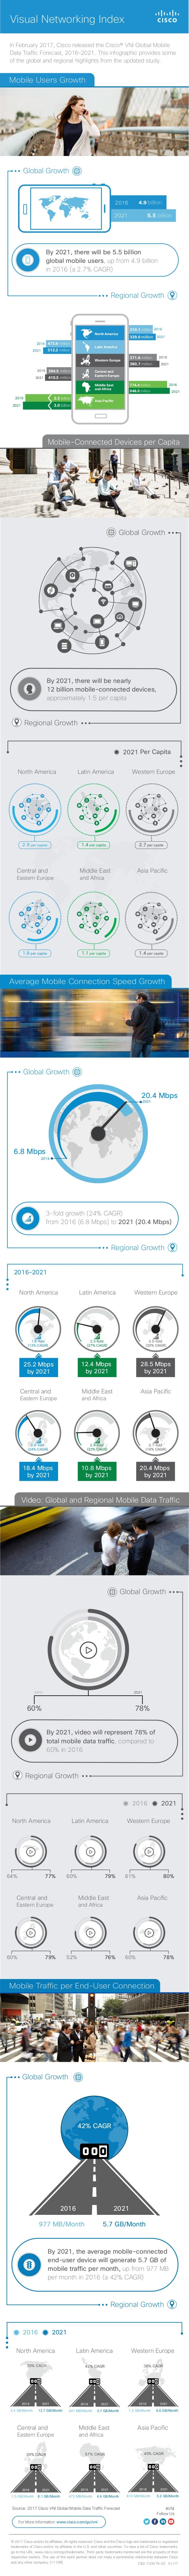 In February 2017, Cisco released the Cisco® VNI Global Mobile Data Traffic Forecast, 2016–2021. This infographic provides ...